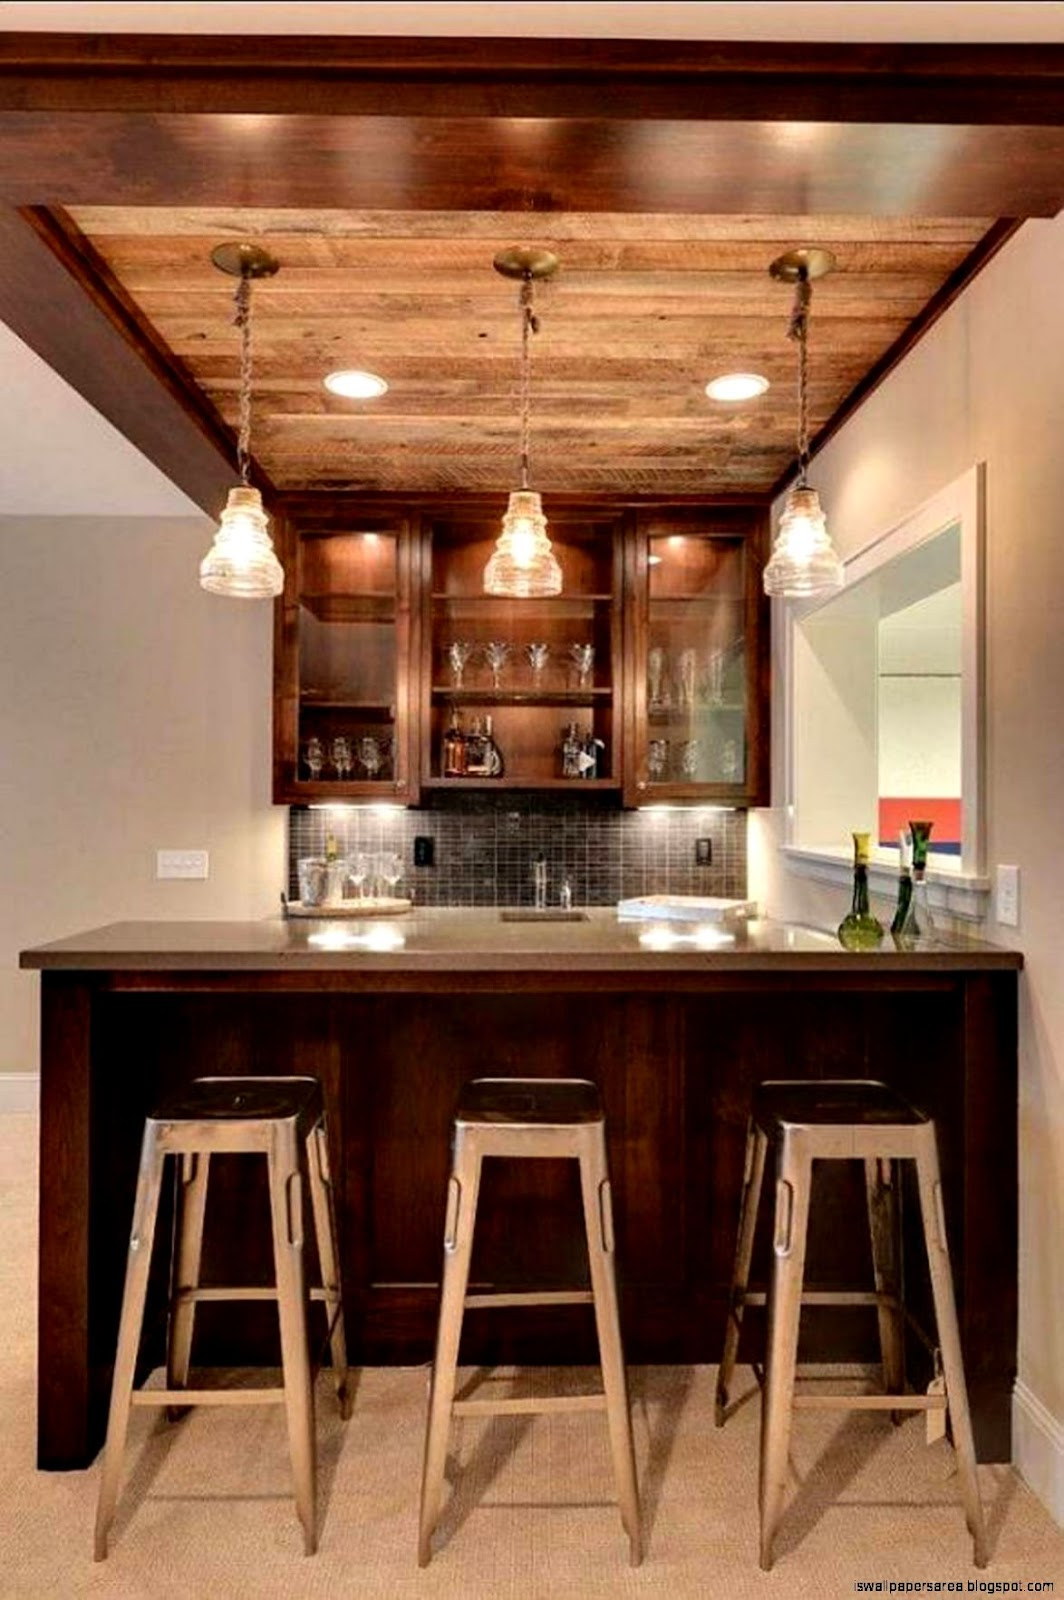 bat small kitchen design ideas trend home design and decor